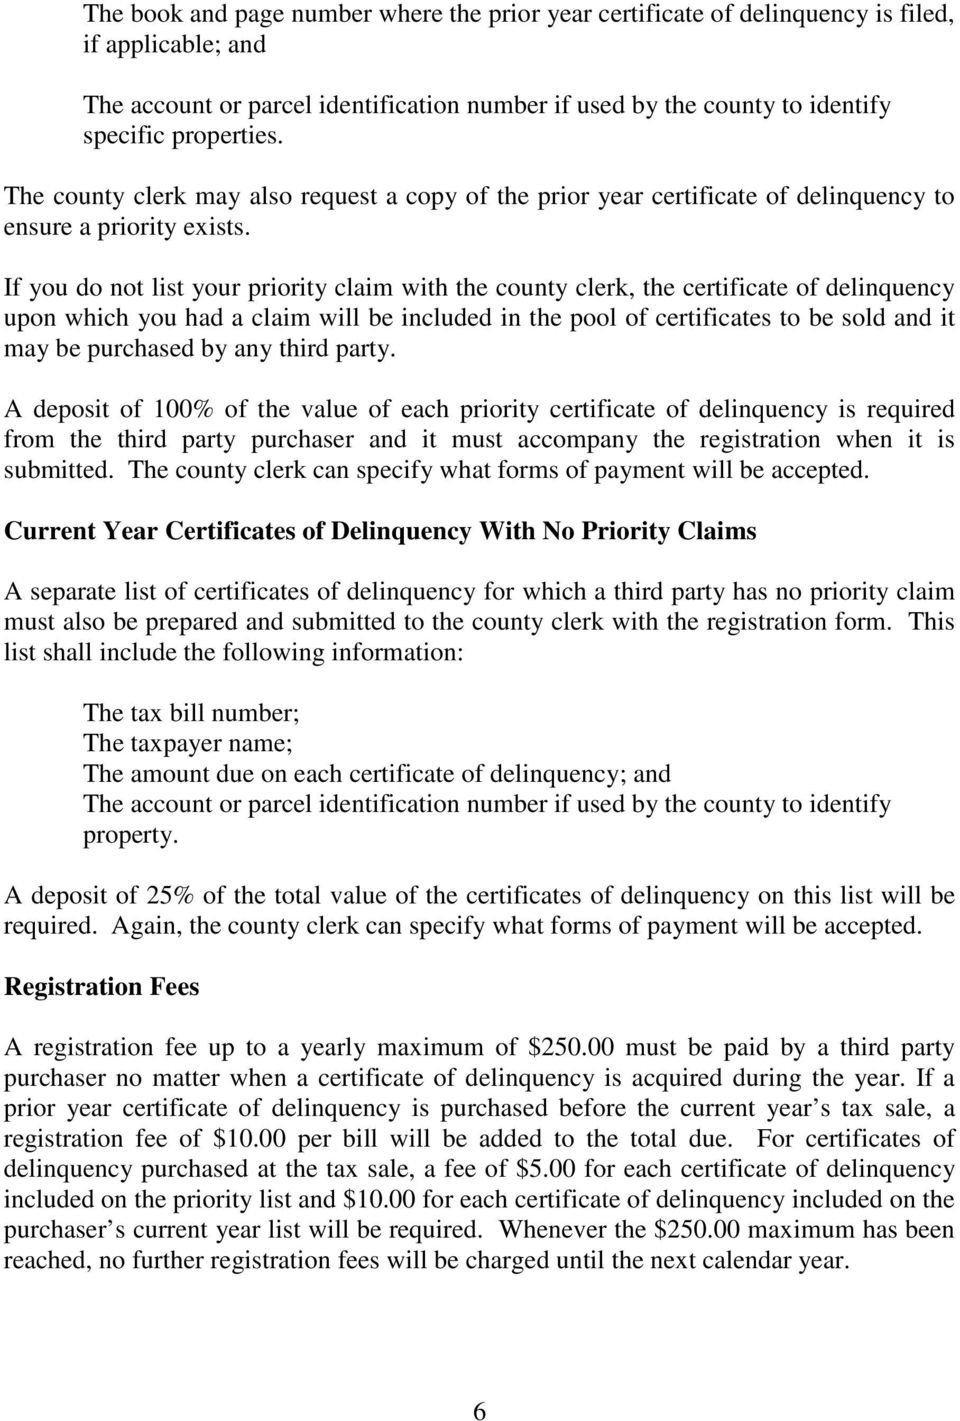 If you do not list your priority claim with the county clerk, the certificate of delinquency upon which you had a claim will be included in the pool of certificates to be sold and it may be purchased